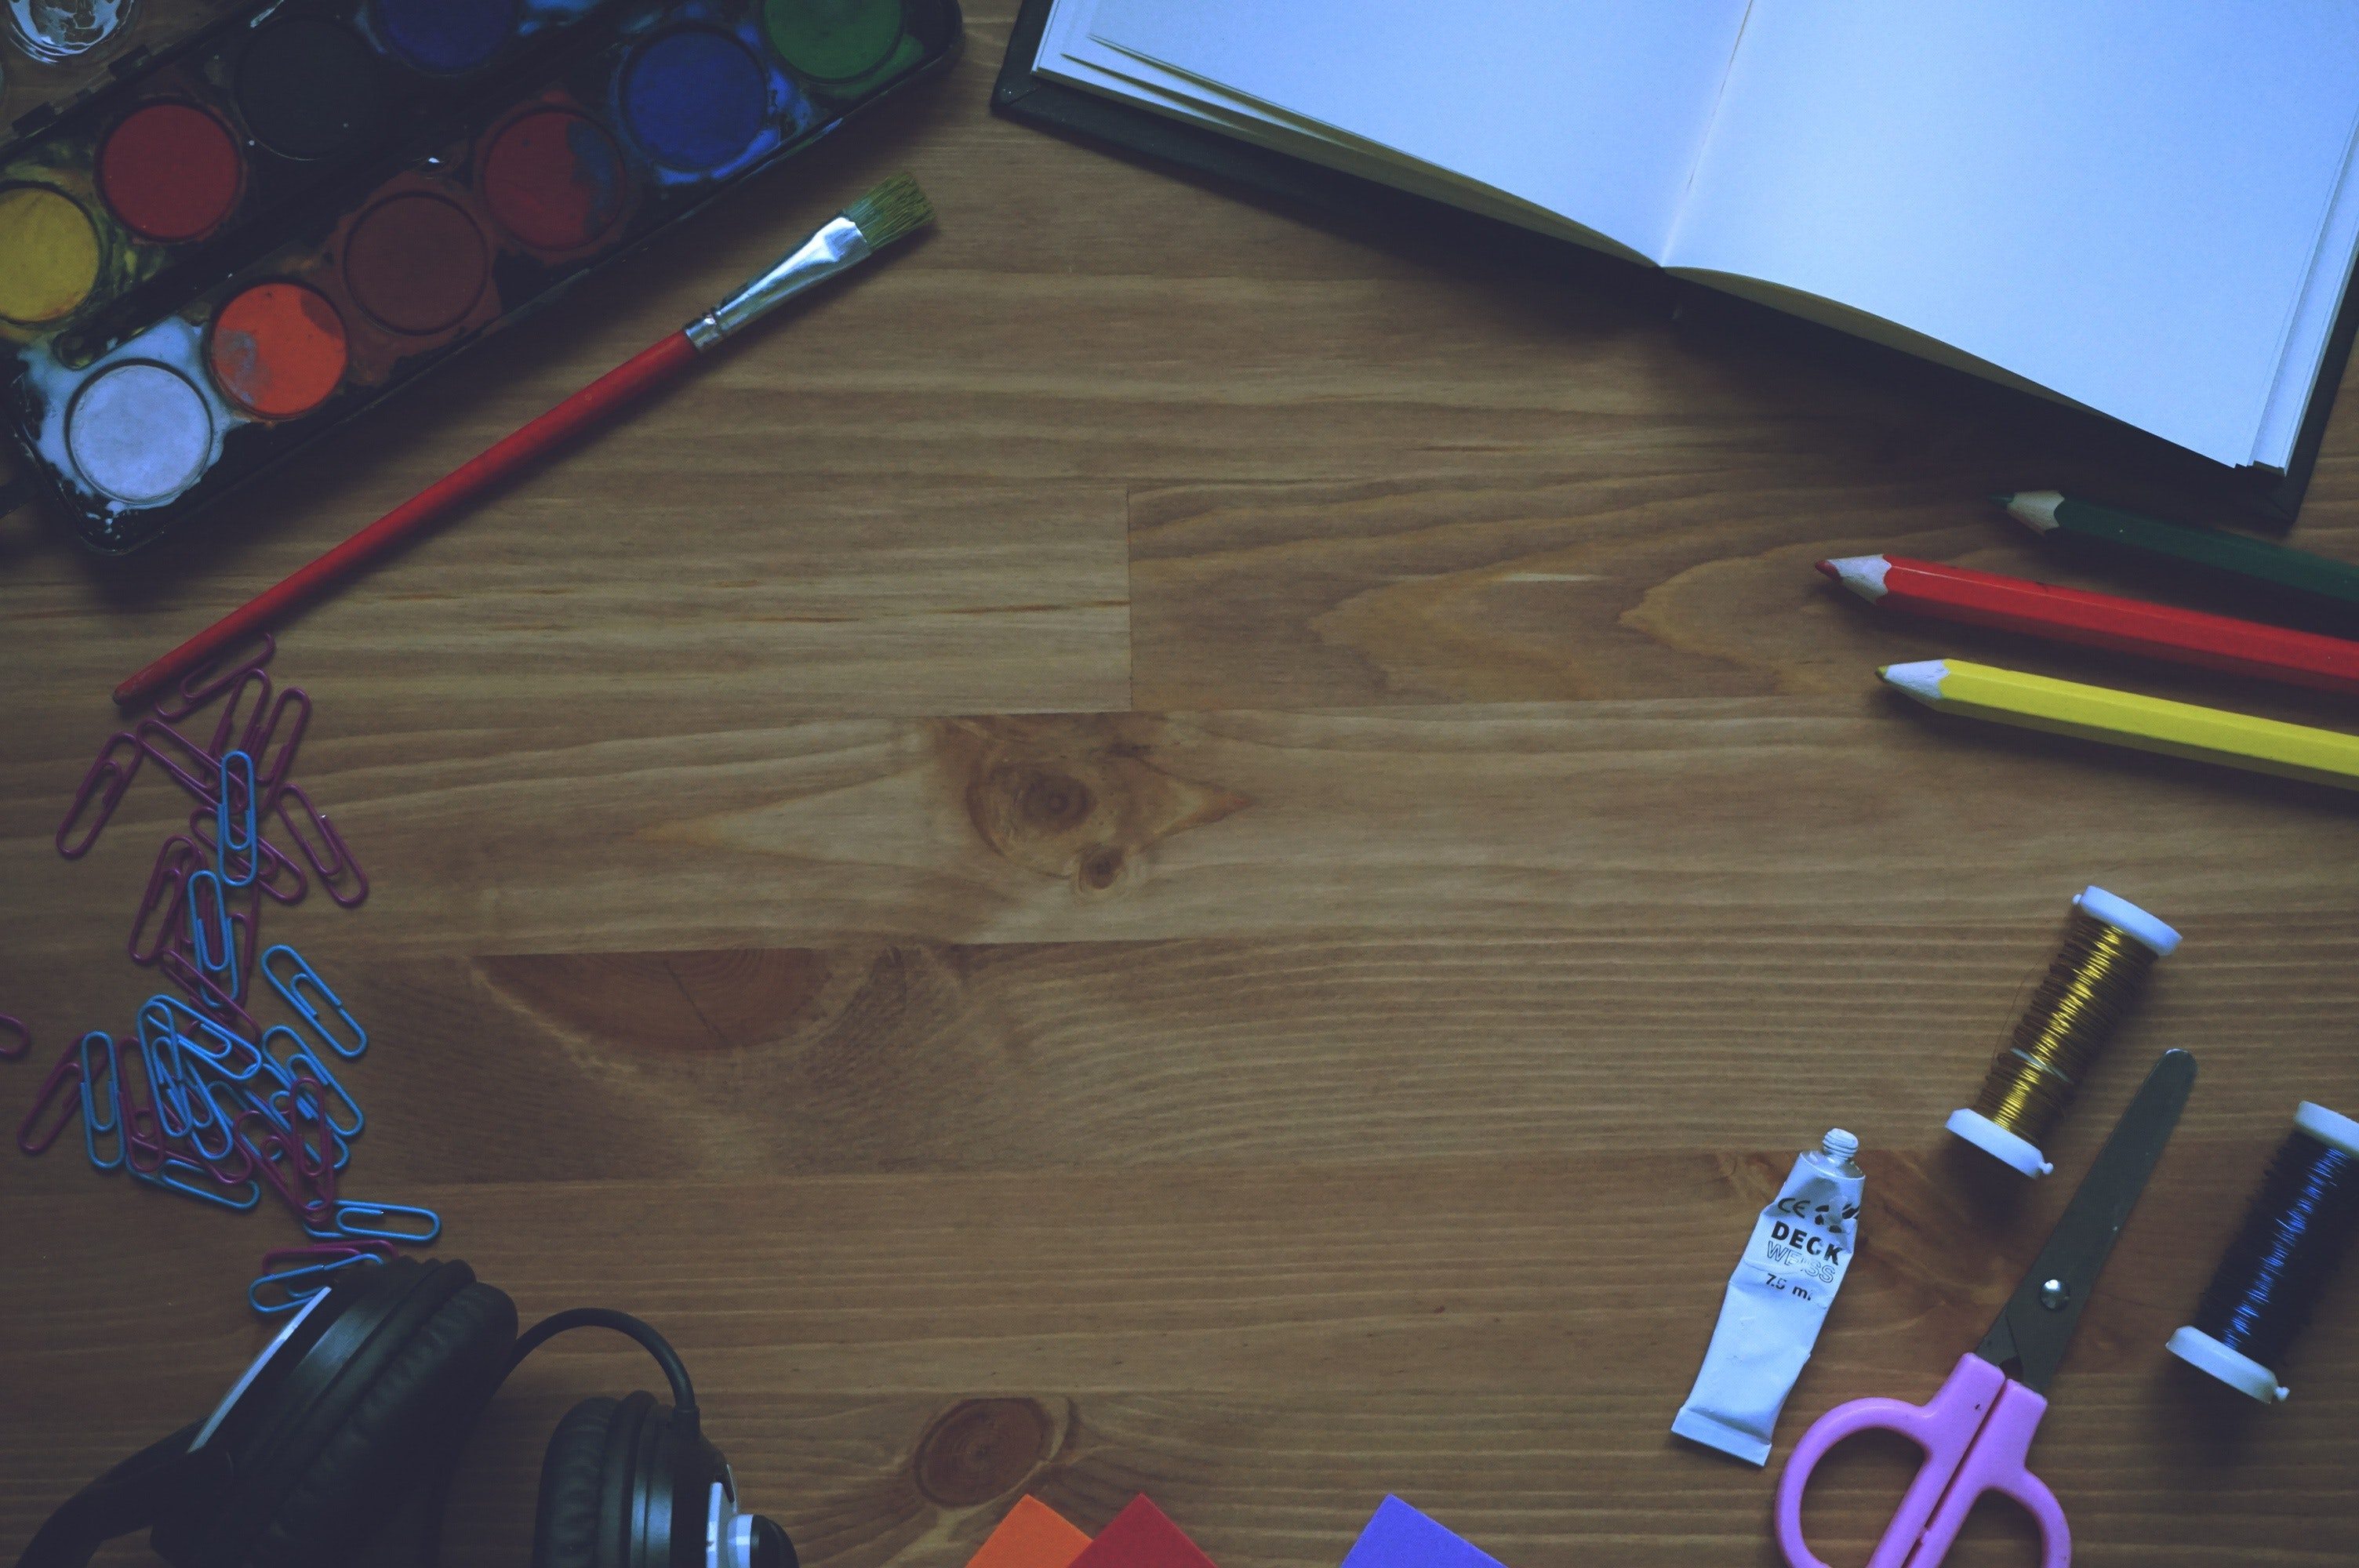 Artwork Materials on Wooden Table, Art, Paint, Table, Scissors, HQ Photo